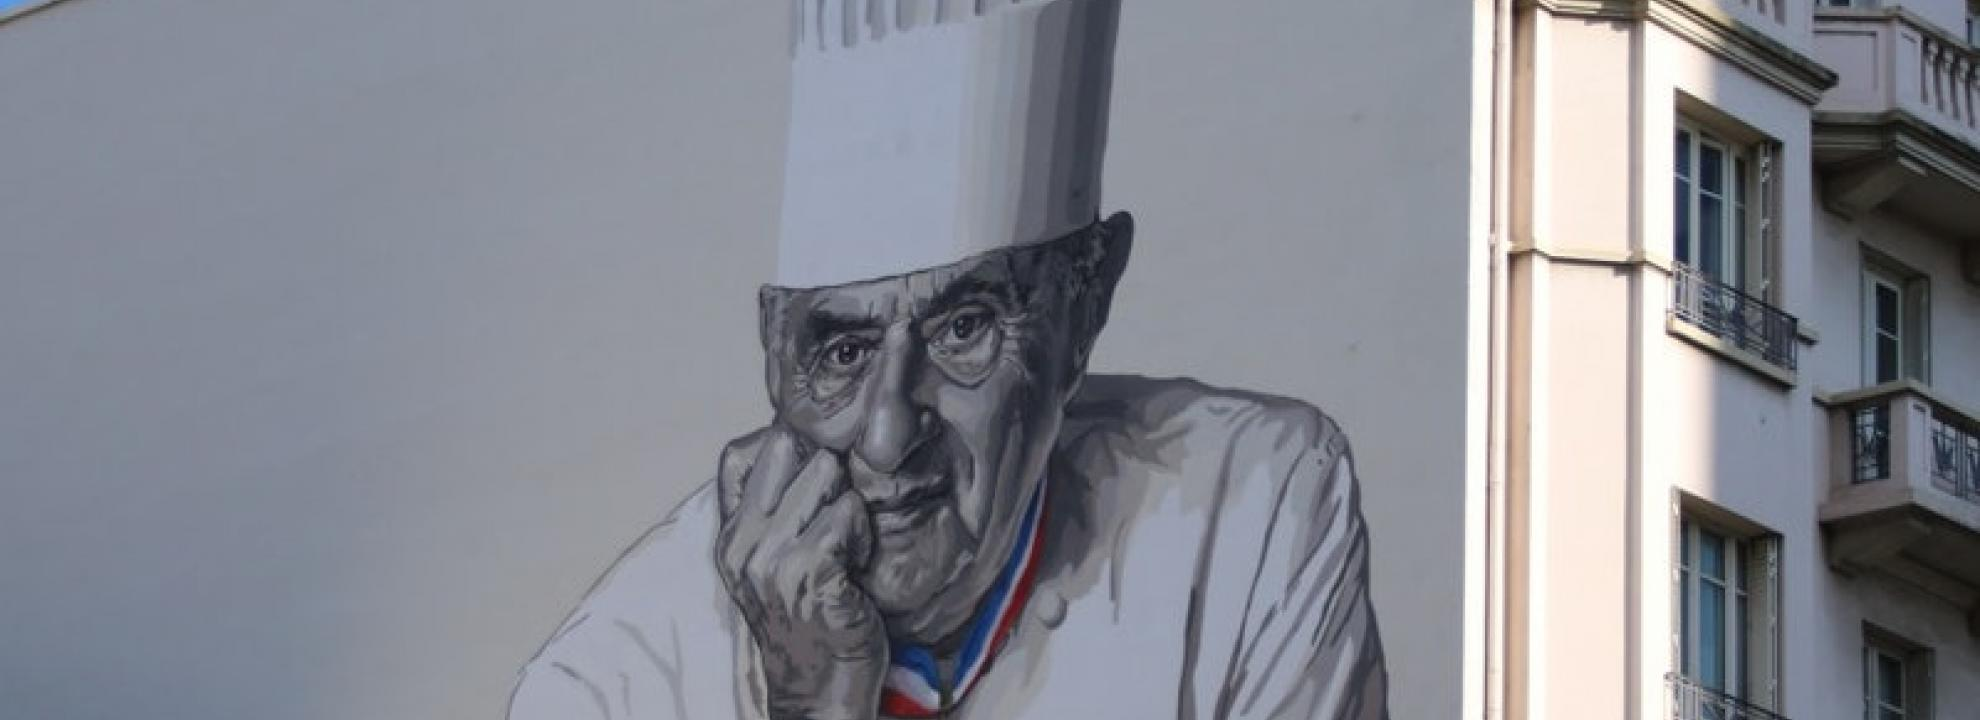 Halles paul bocuse